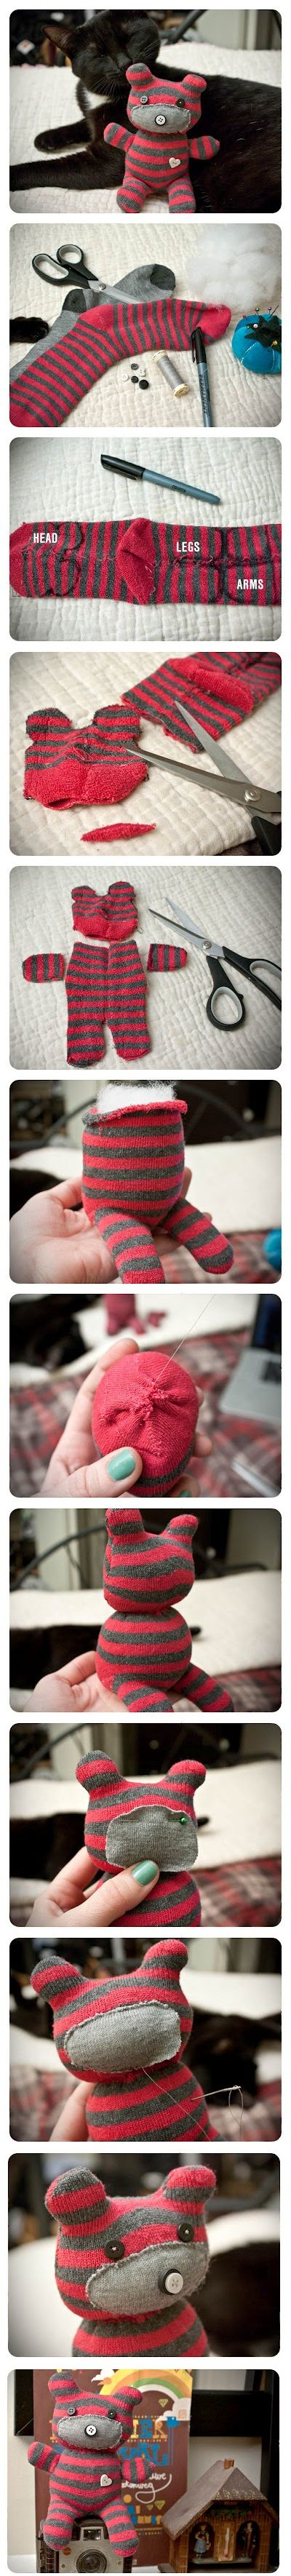 DIY Cute Little Teddy Bear and not creepy like sock monkeys.